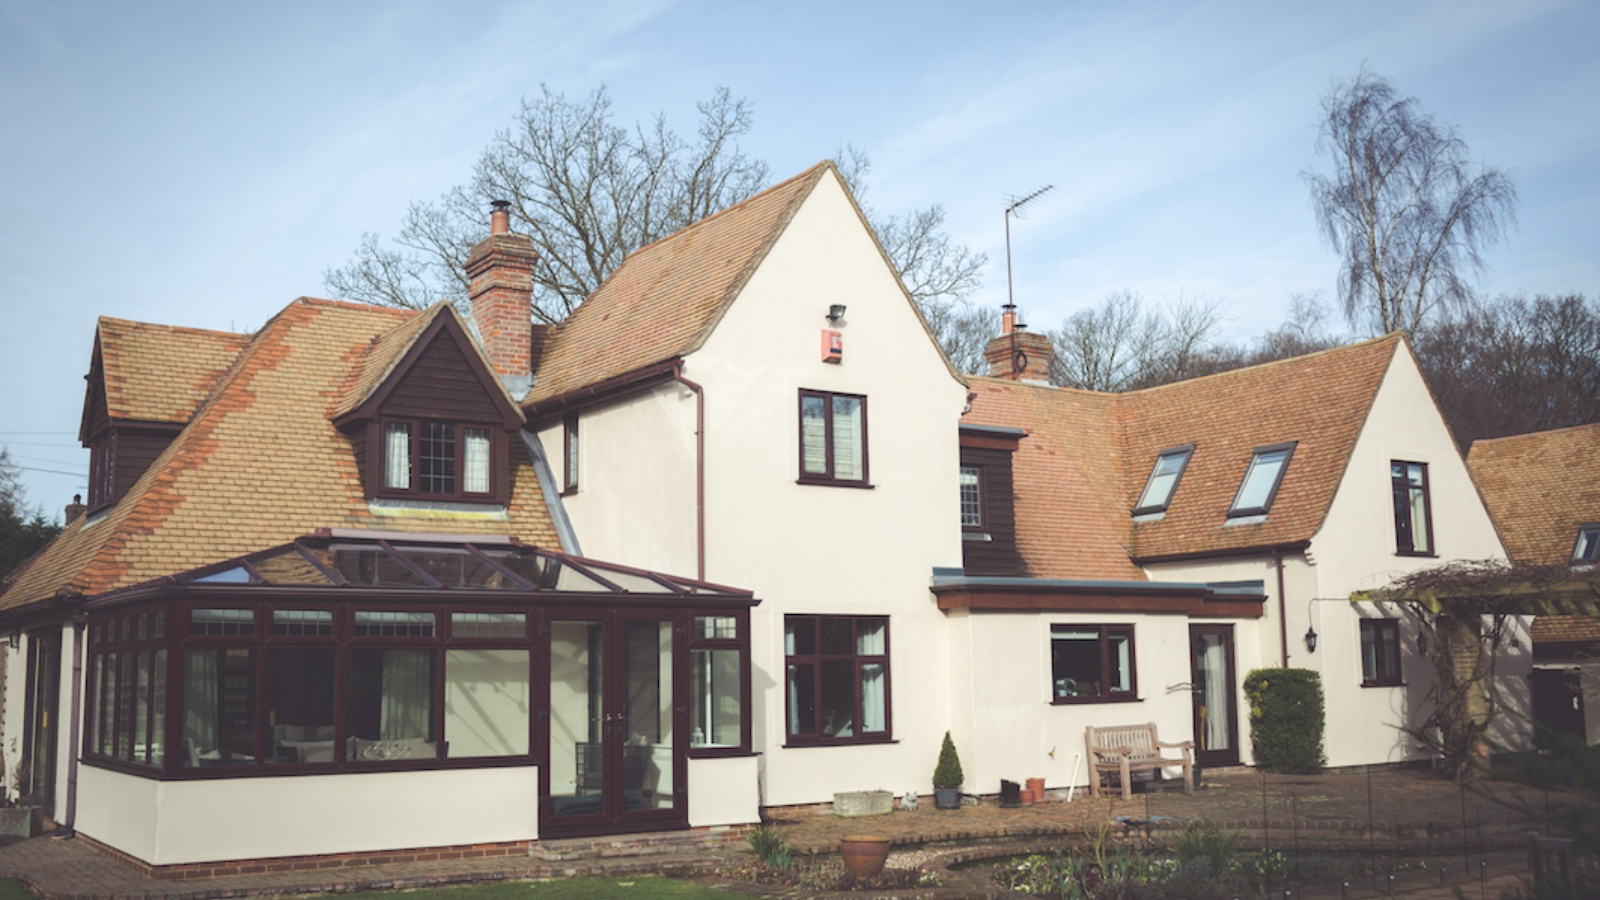 Freshly cleaned rooftops and new cowls make a very smart home ready for all seasons.